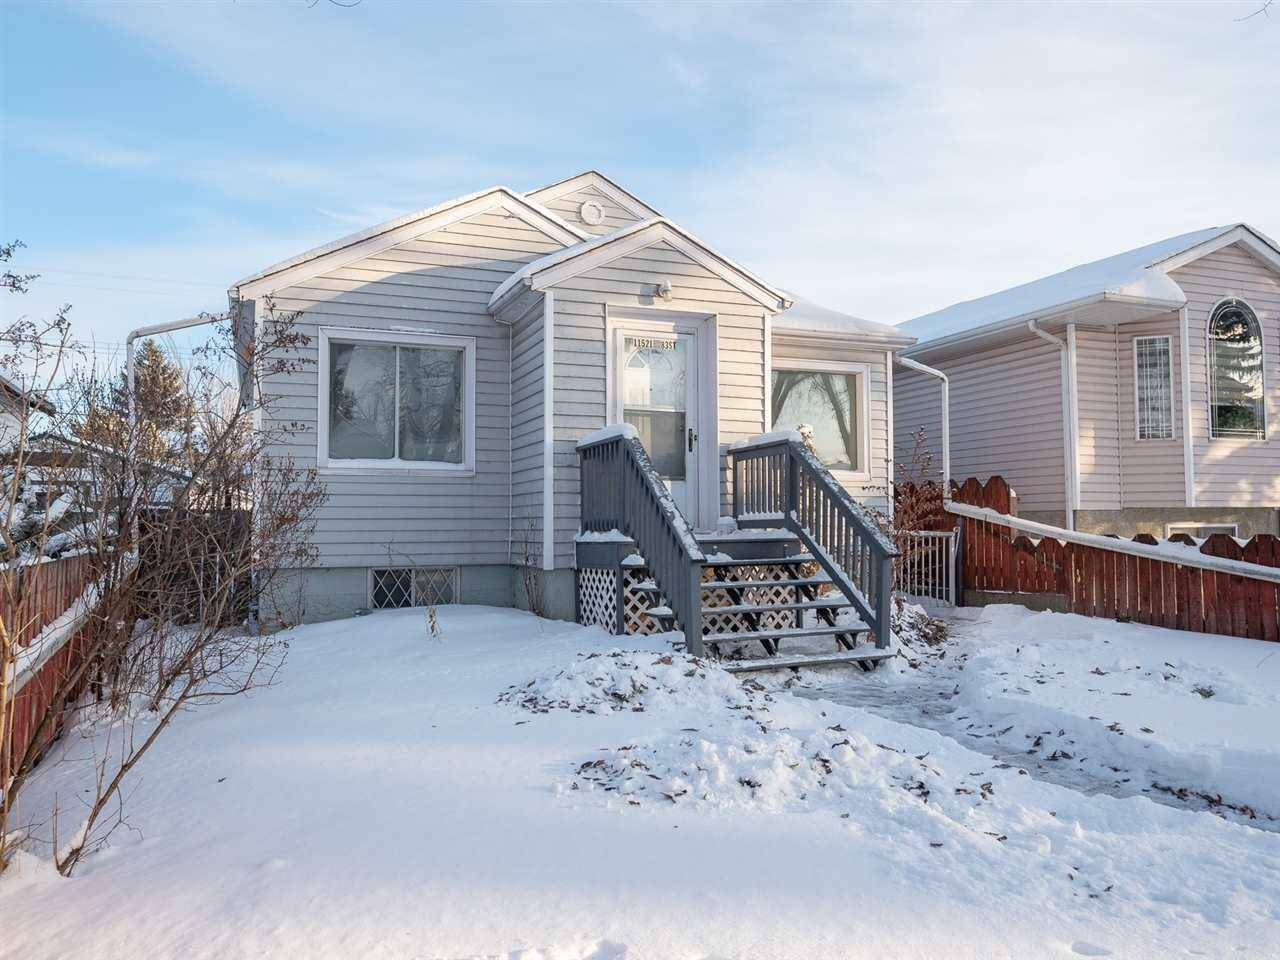 House for sale at 11521 83 St Nw Edmonton Alberta - MLS: E4183986